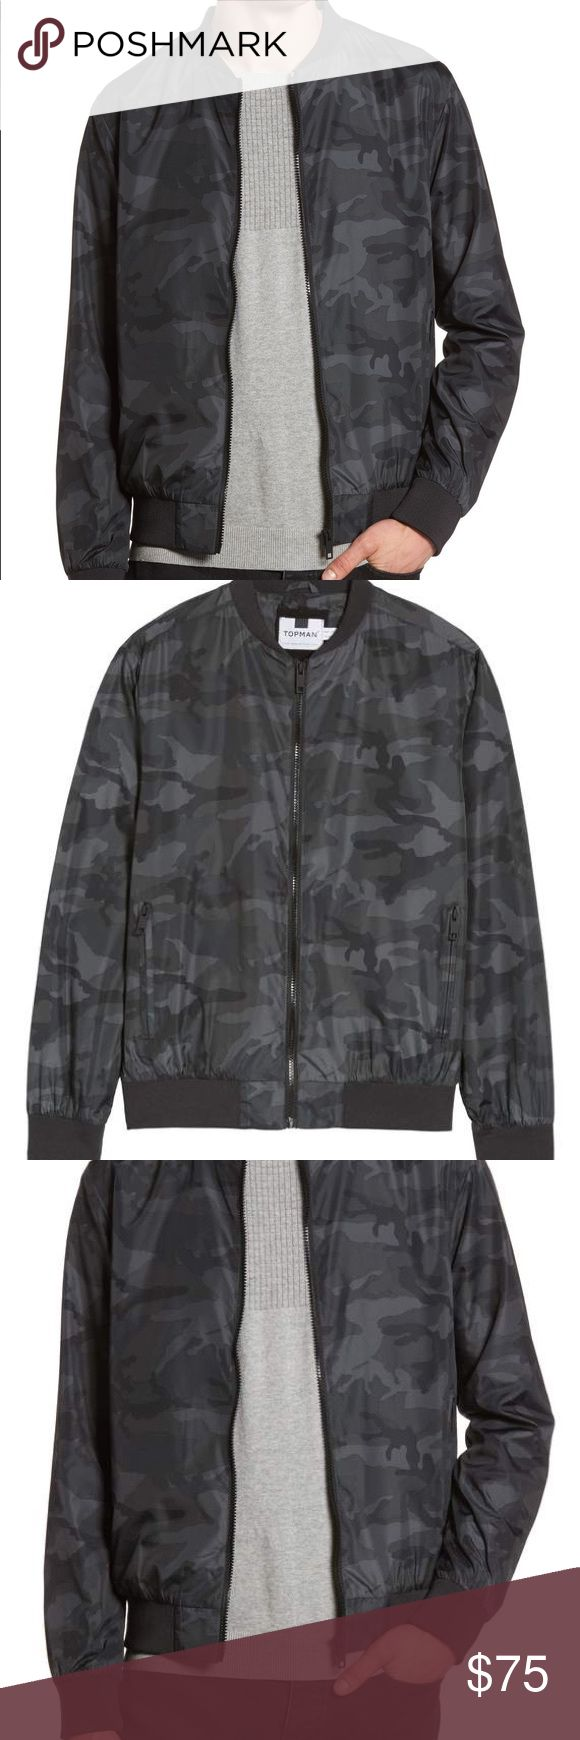 """Camo Print Bomber Jacket TOPMAN $90 msrp XL A classic bomber jacket made from slick, camo-print fabric with soft ribbed trim is just light enough for easy layering without losing any style points. 26"""" length (size Large) Front zip closure Long sleeves Ribbed collar, cuffs and hem Front zip pockets Lined 100% polyester Machine wash, line dry Imported- sold out 2018 style- brand new- tags removed to prevent store return Topman Jackets & Coats Bomber & Varsity"""